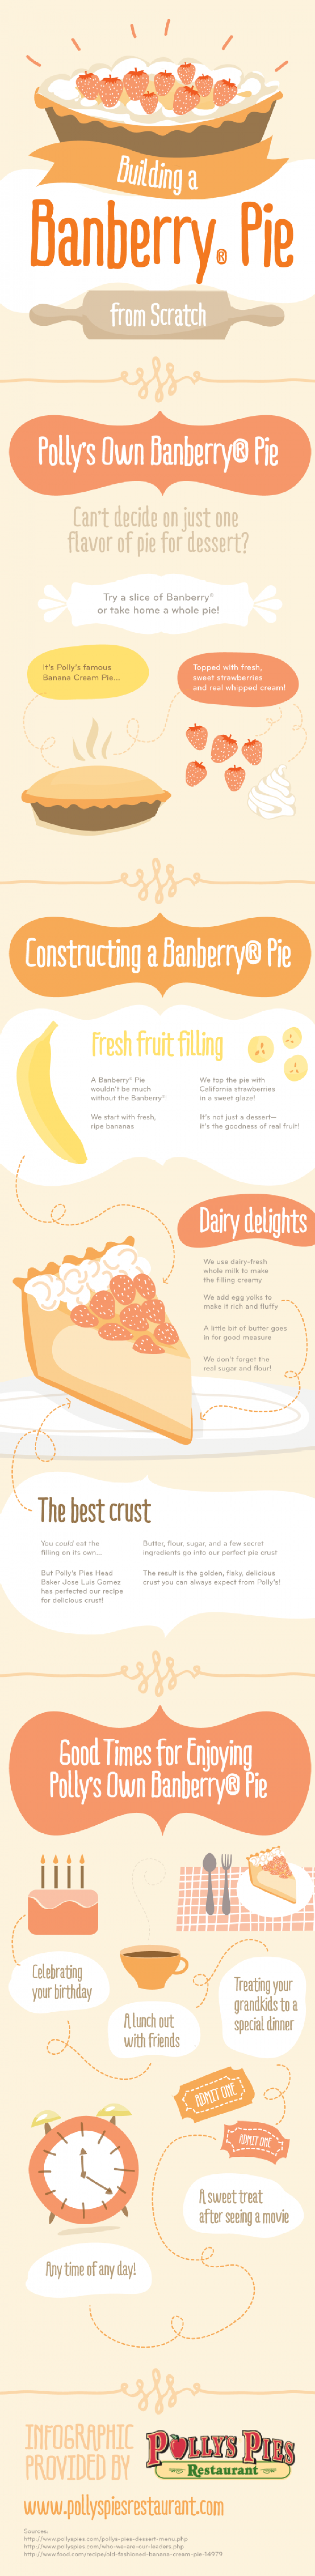 Building a Banberry® Pie from Scratch Infographic